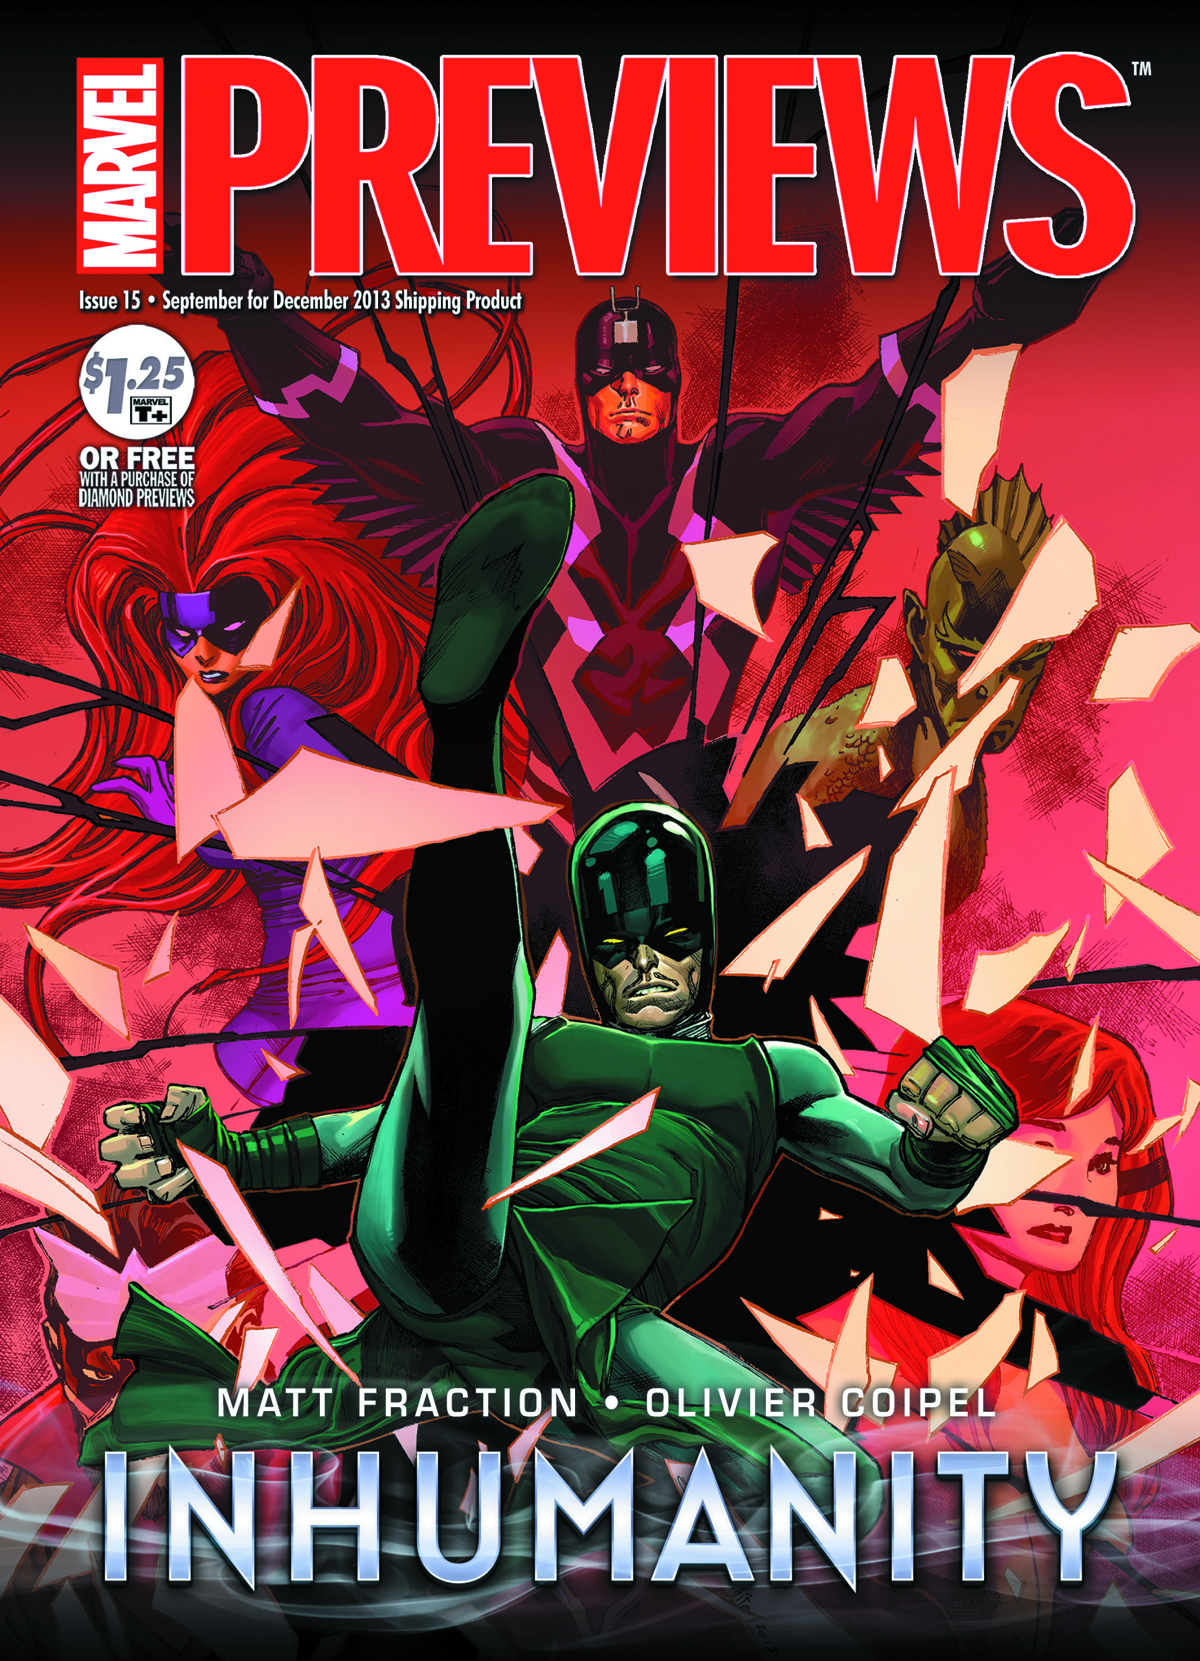 MARVEL PREVIEWS OCTOBER 2013 EXTRAS